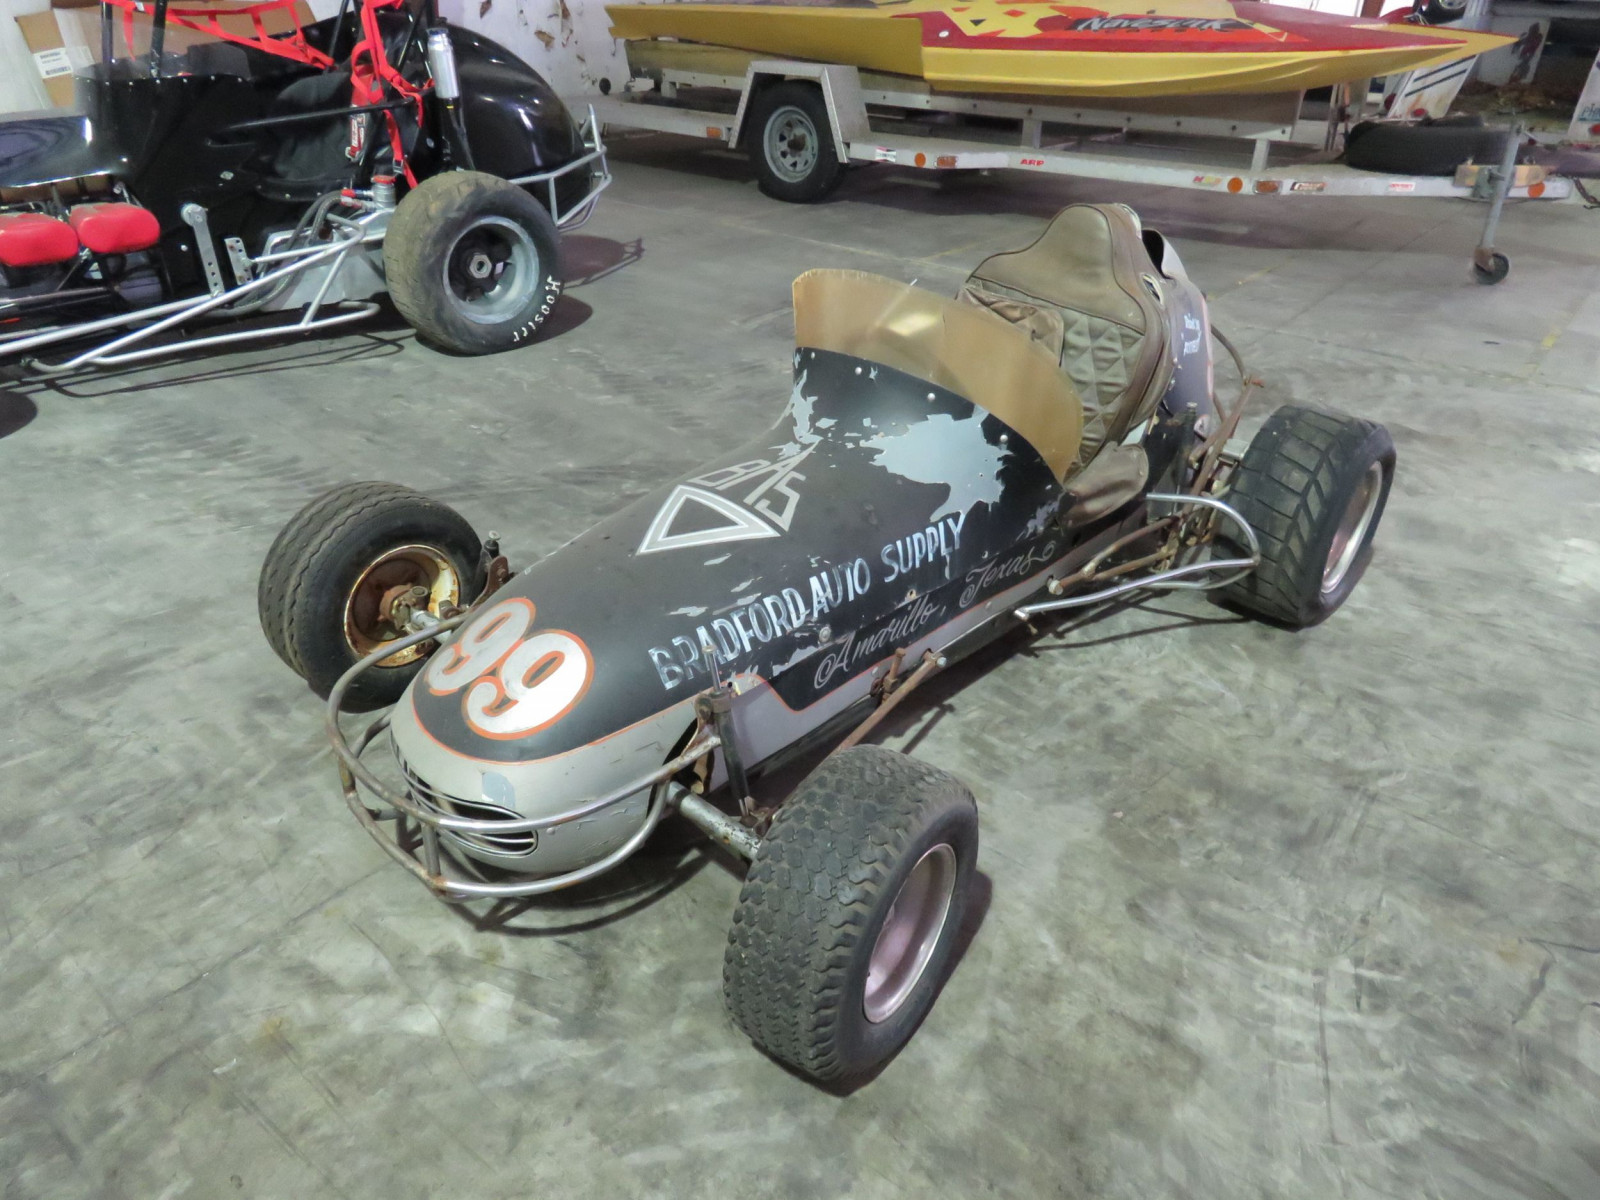 Vintage  1/2 scale Midget Sprint Race Car - Image 1